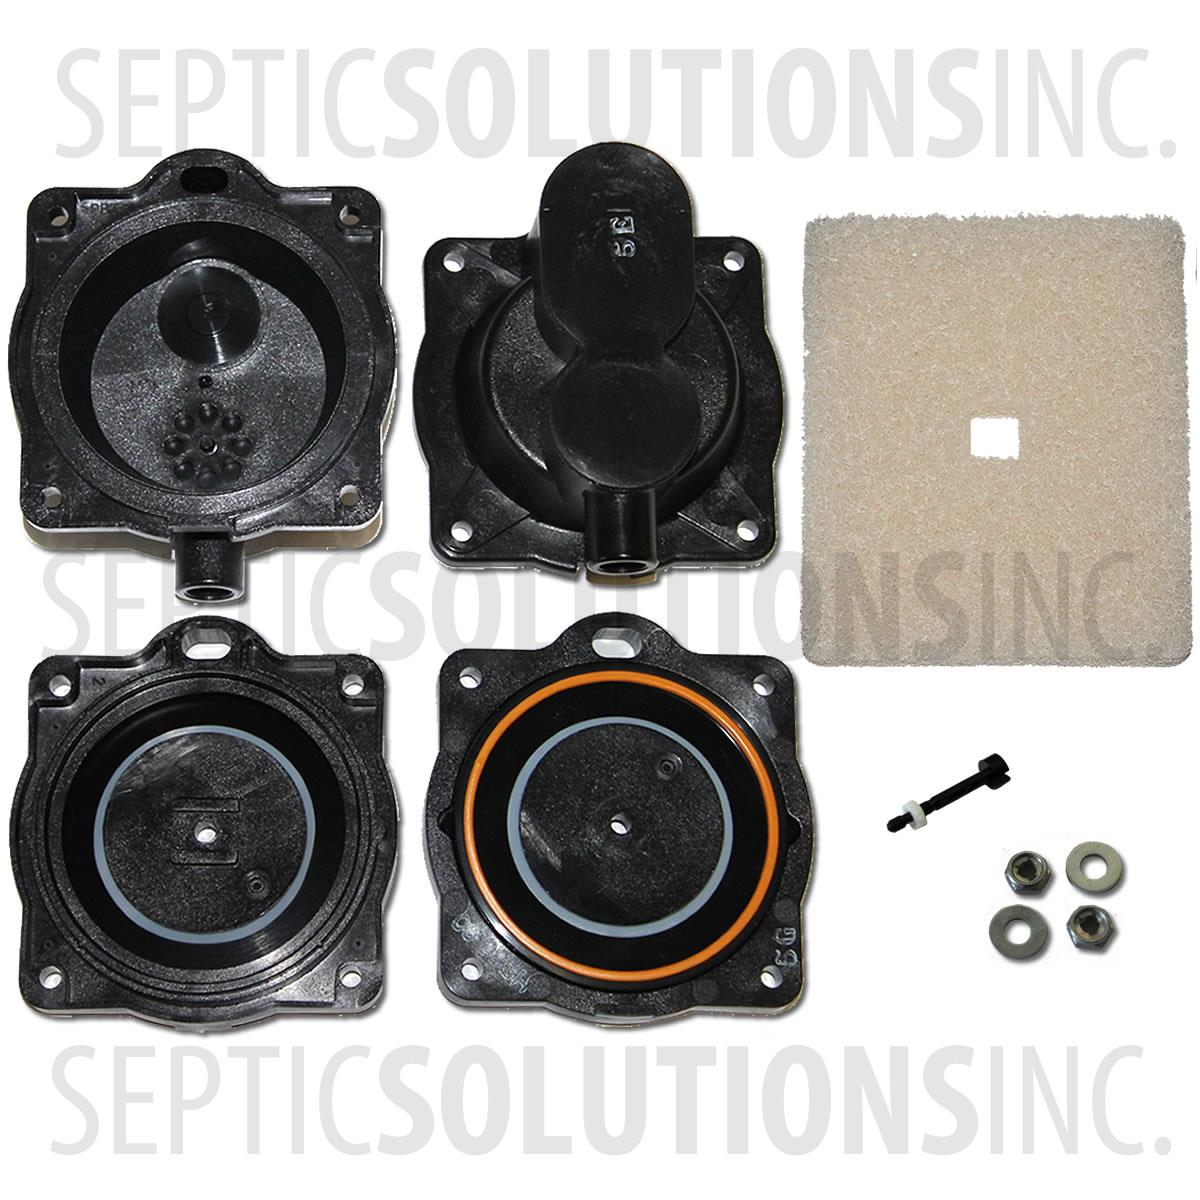 80PC000042_1?w=270 clearstream aerobic septic system air pumps and repair parts  at honlapkeszites.co